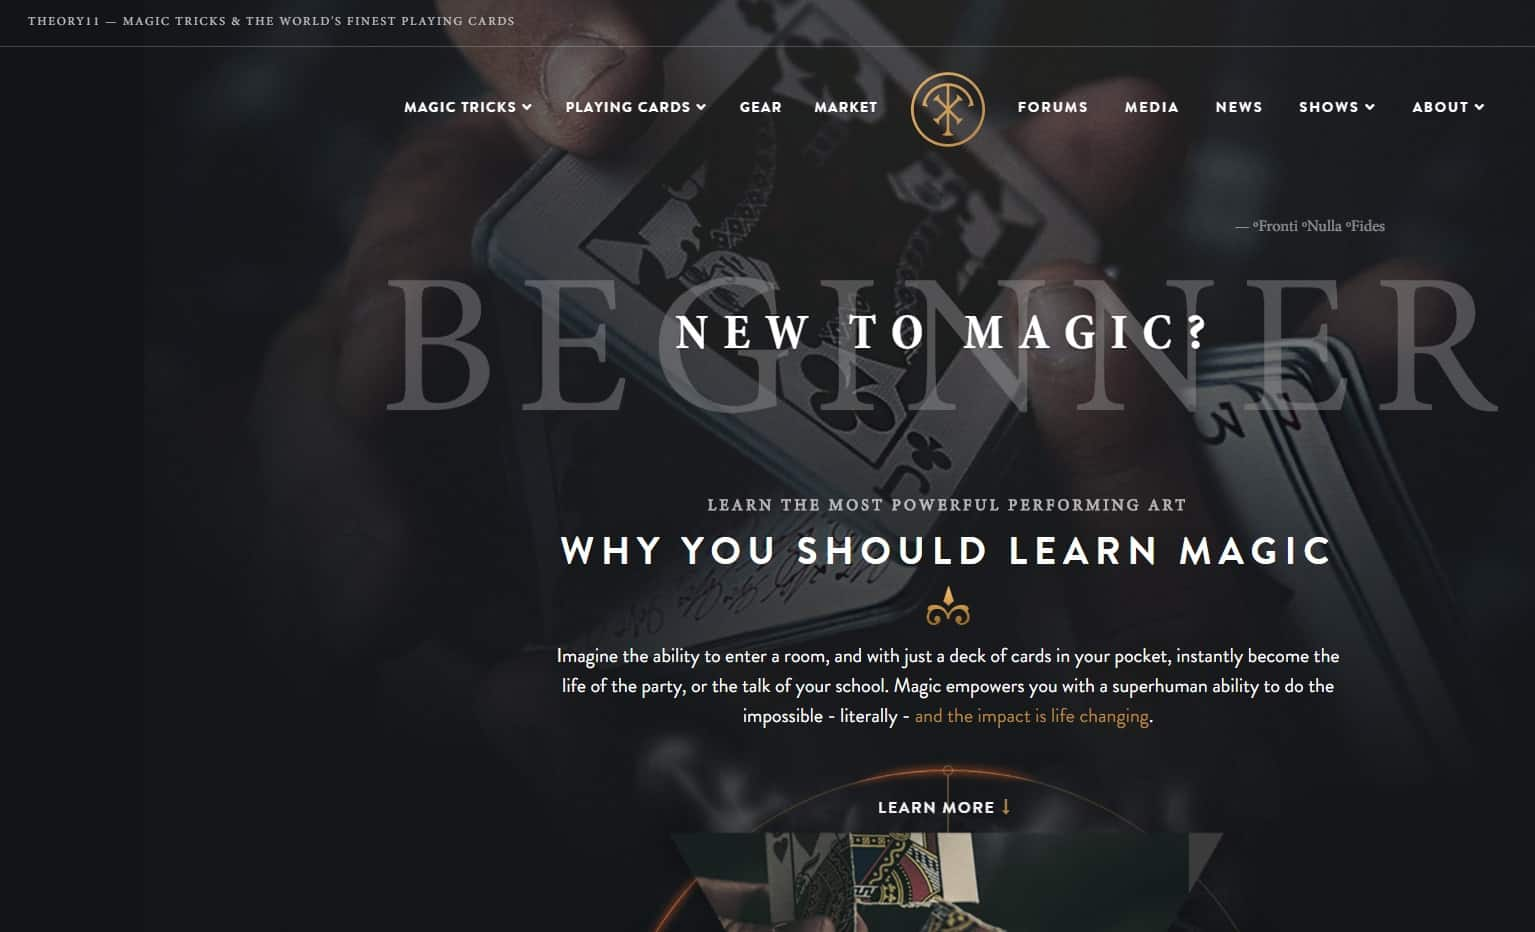 Theory11 Magic Lessons for Beginners